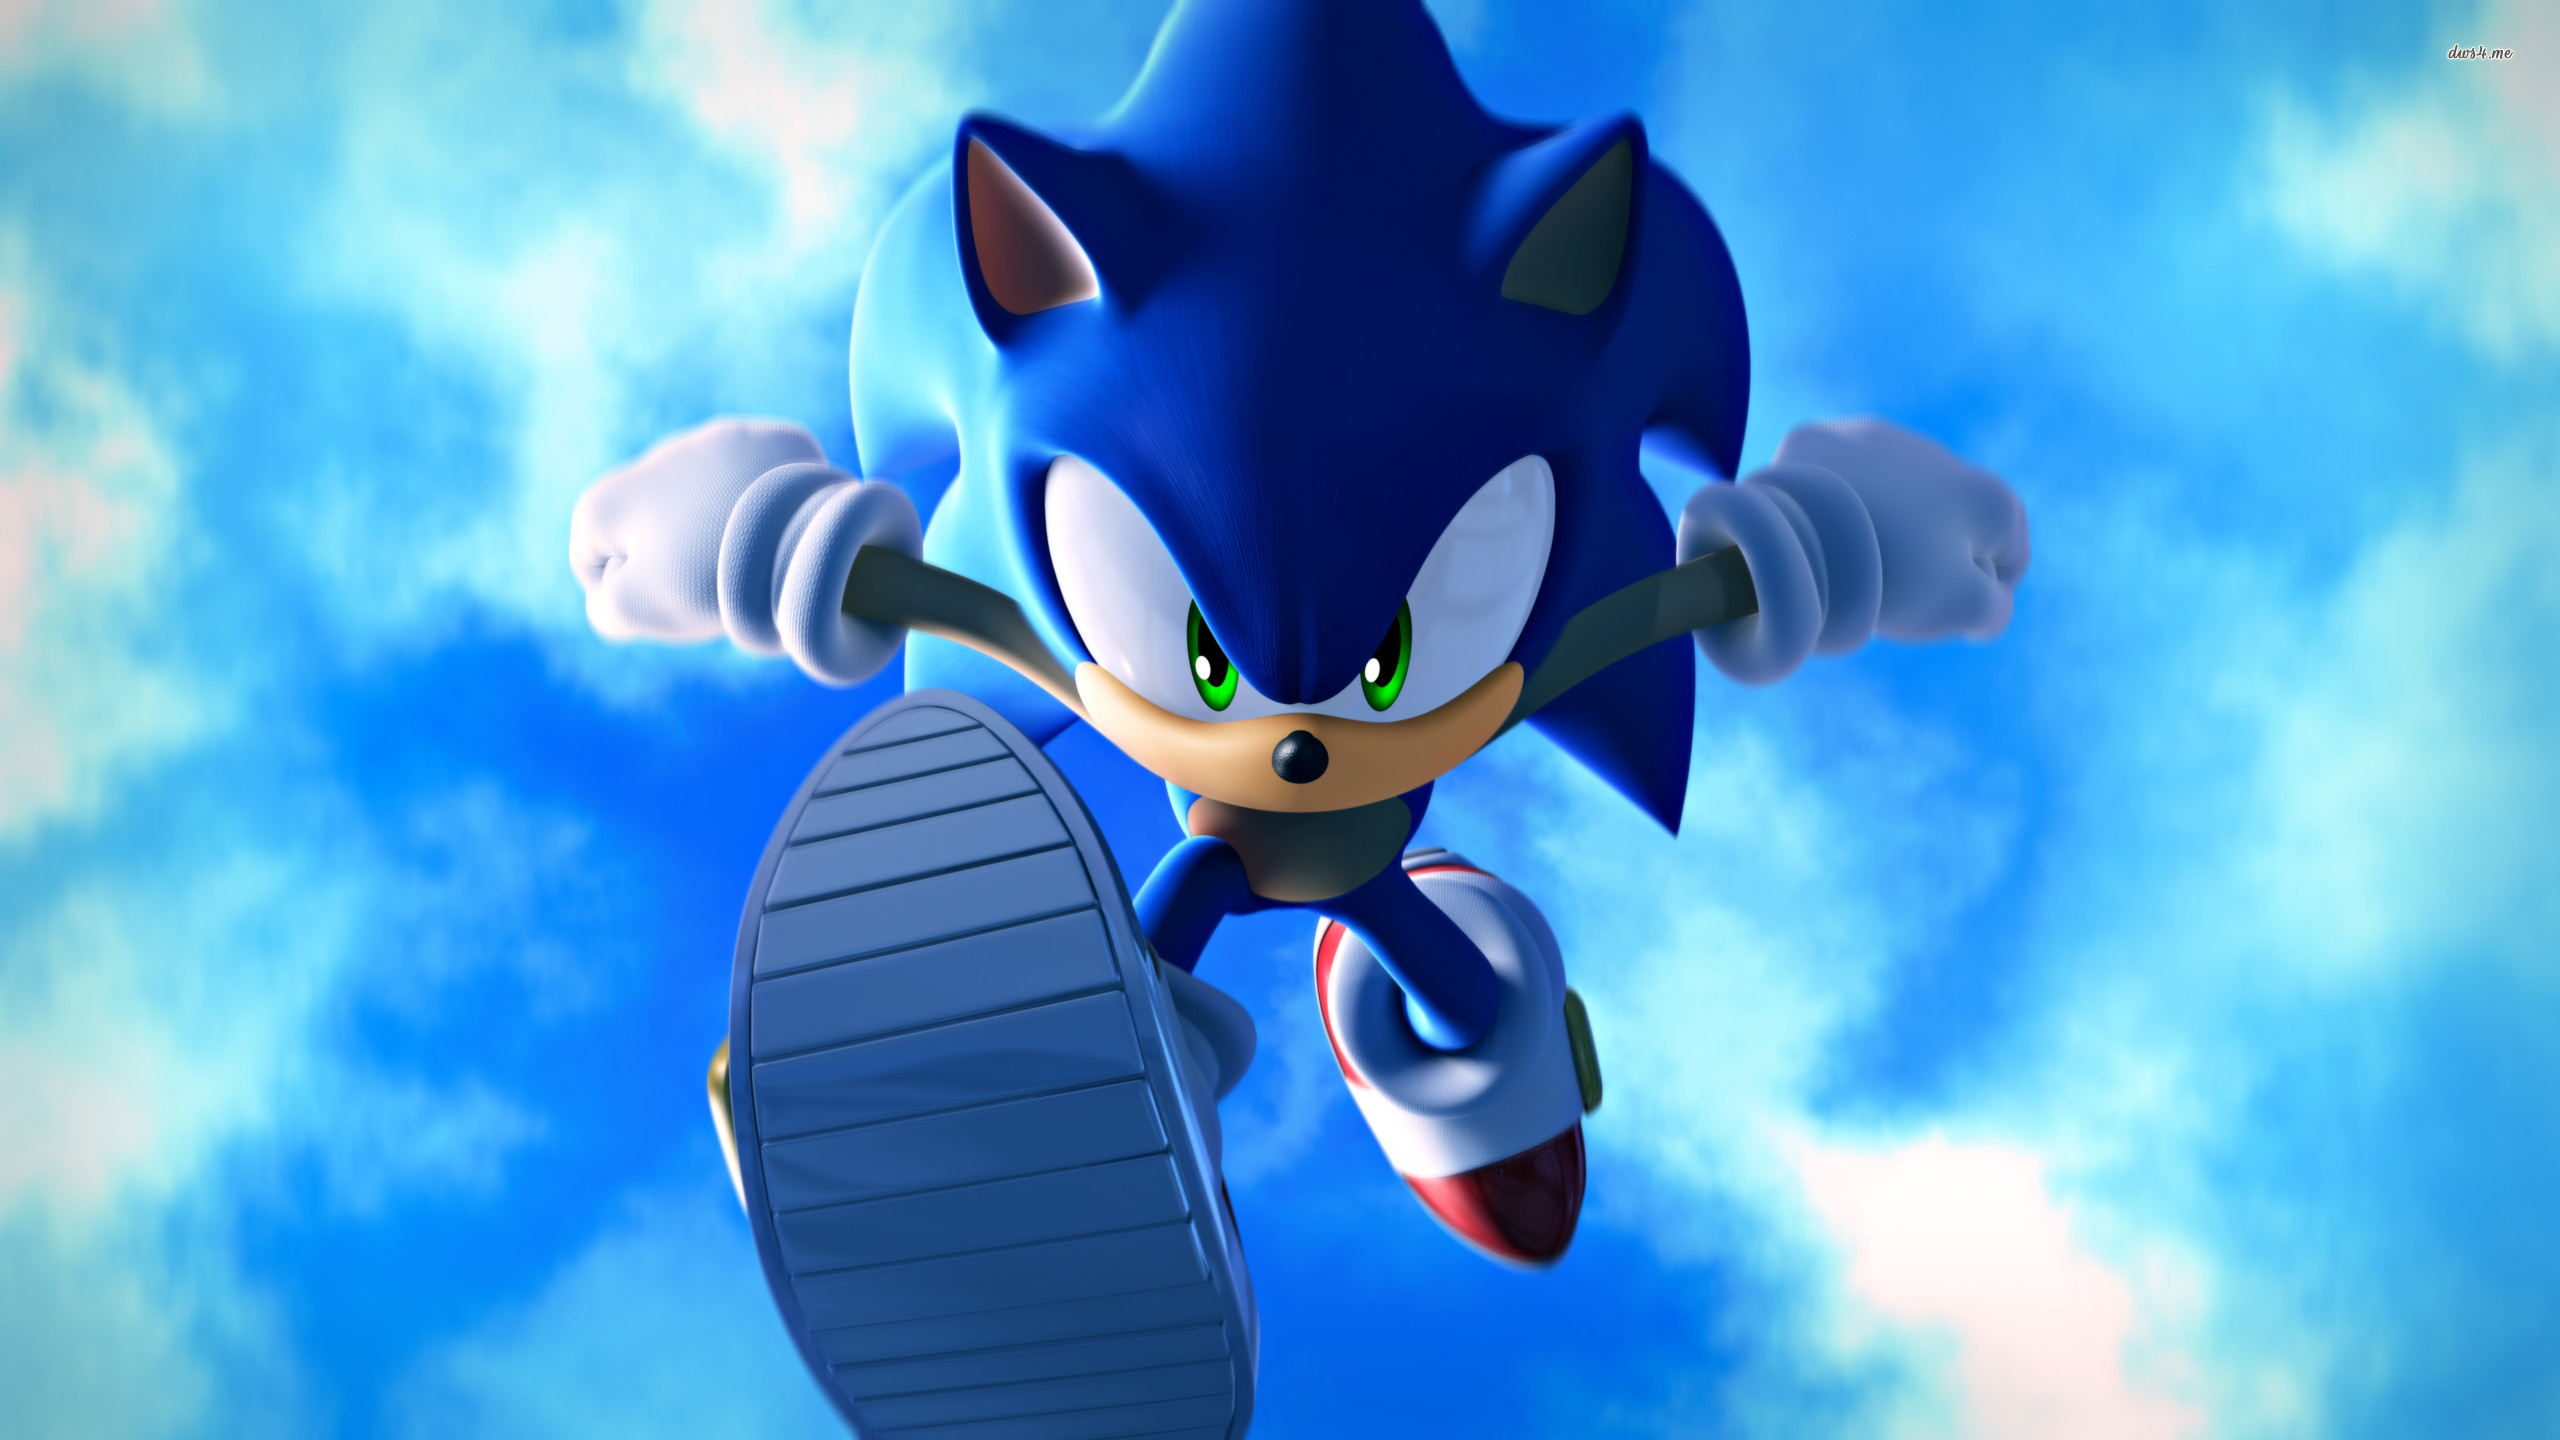 AVW-29: HD Sonic Wallpaper 1080p, Pictures of Sonic 1080p .